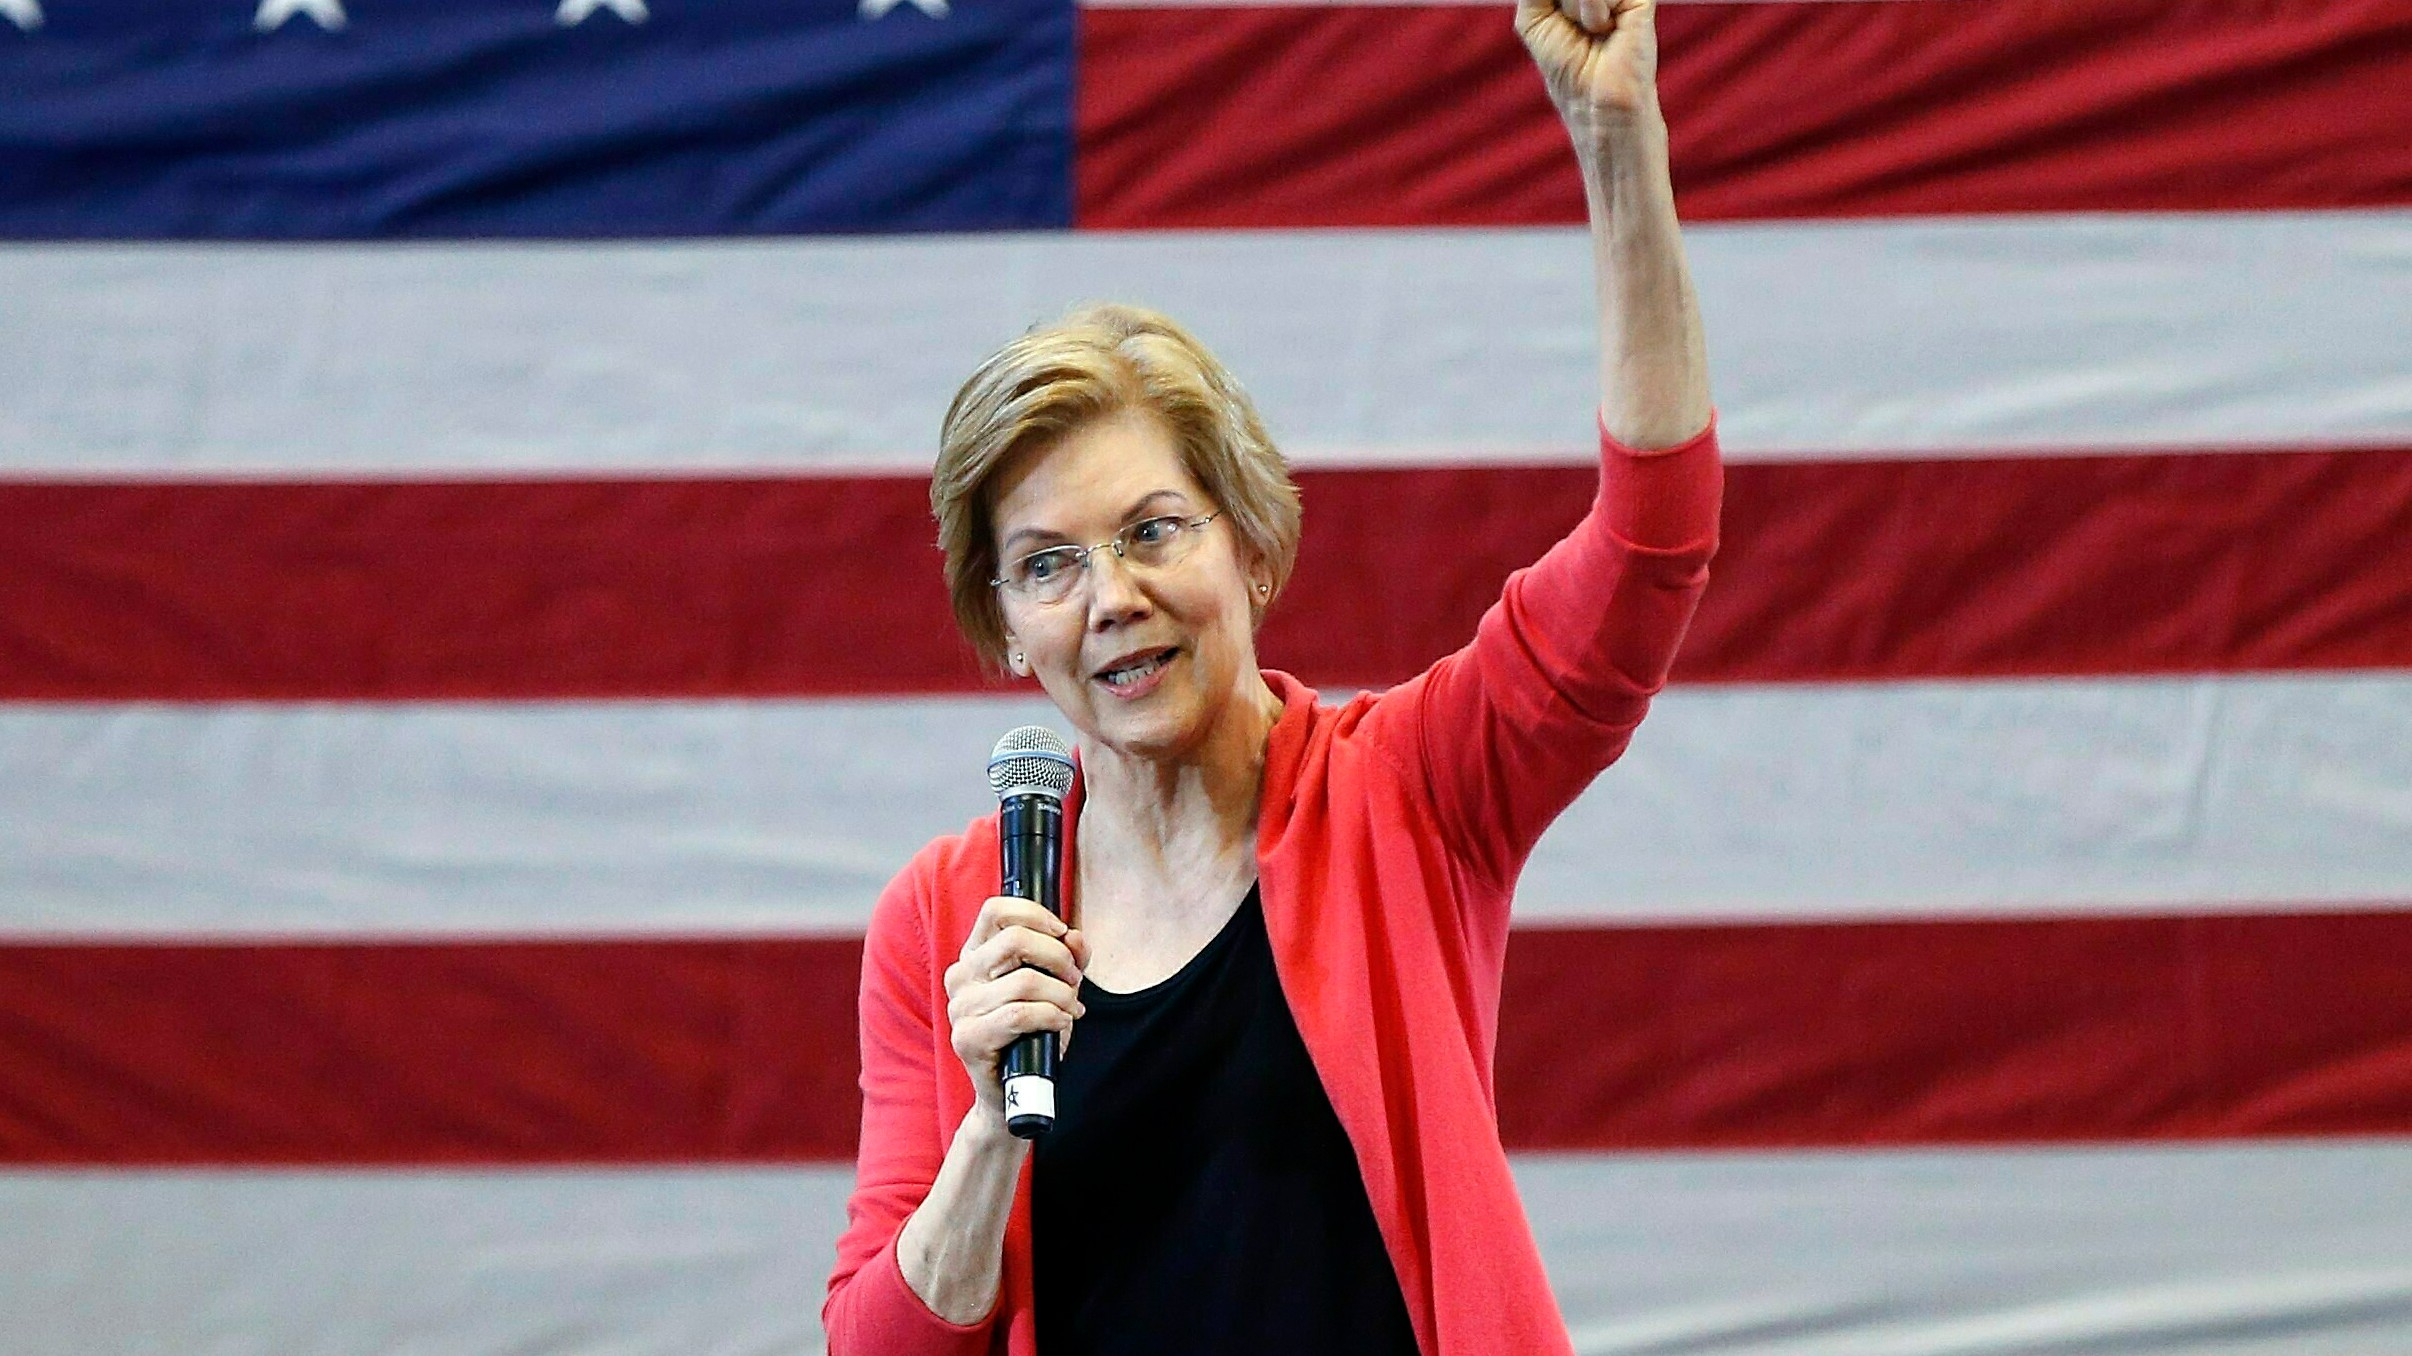 Elizabeth Warren just unveiled a plan to cancel student debt for 75% of Americans